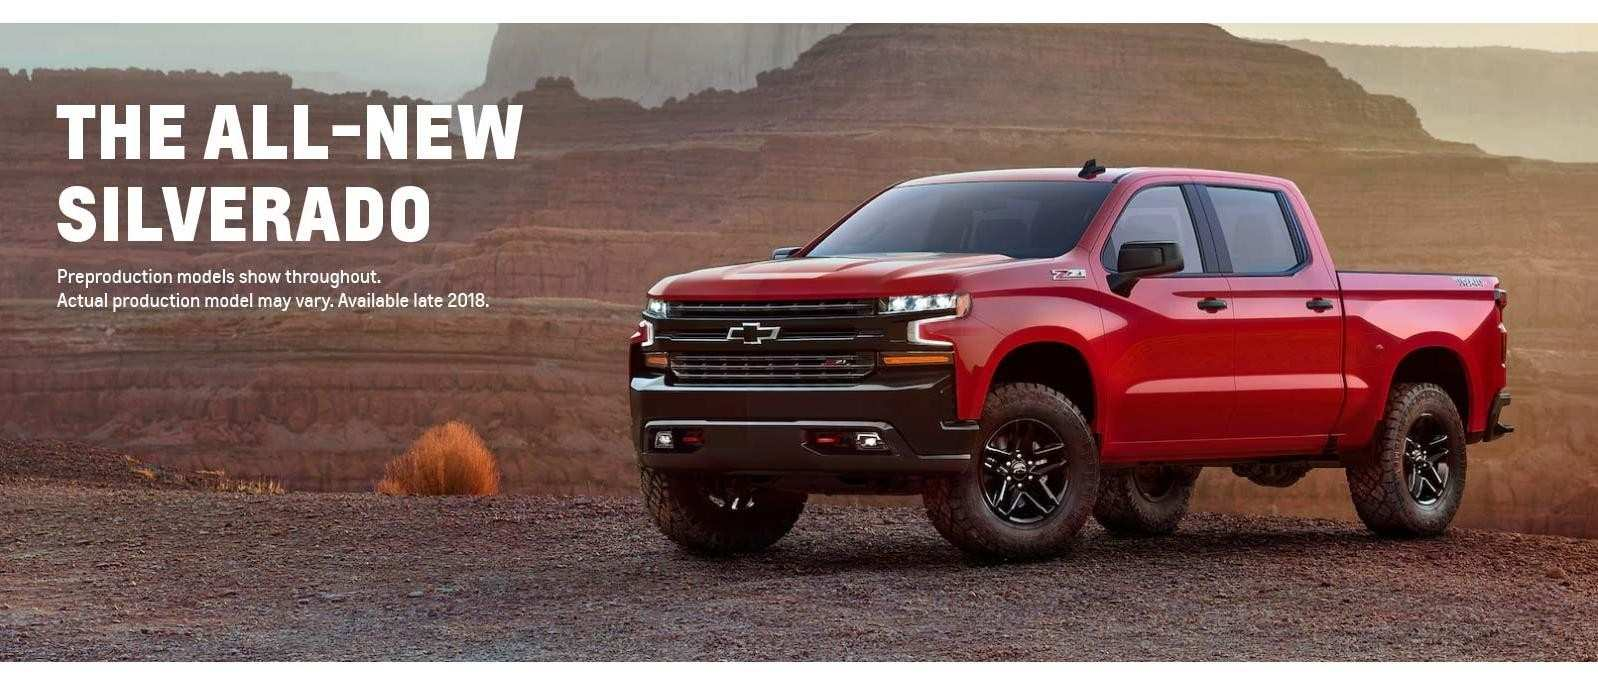 26 New New Chevrolet New Models 2019 Release Date Price And Review Release Date by New Chevrolet New Models 2019 Release Date Price And Review